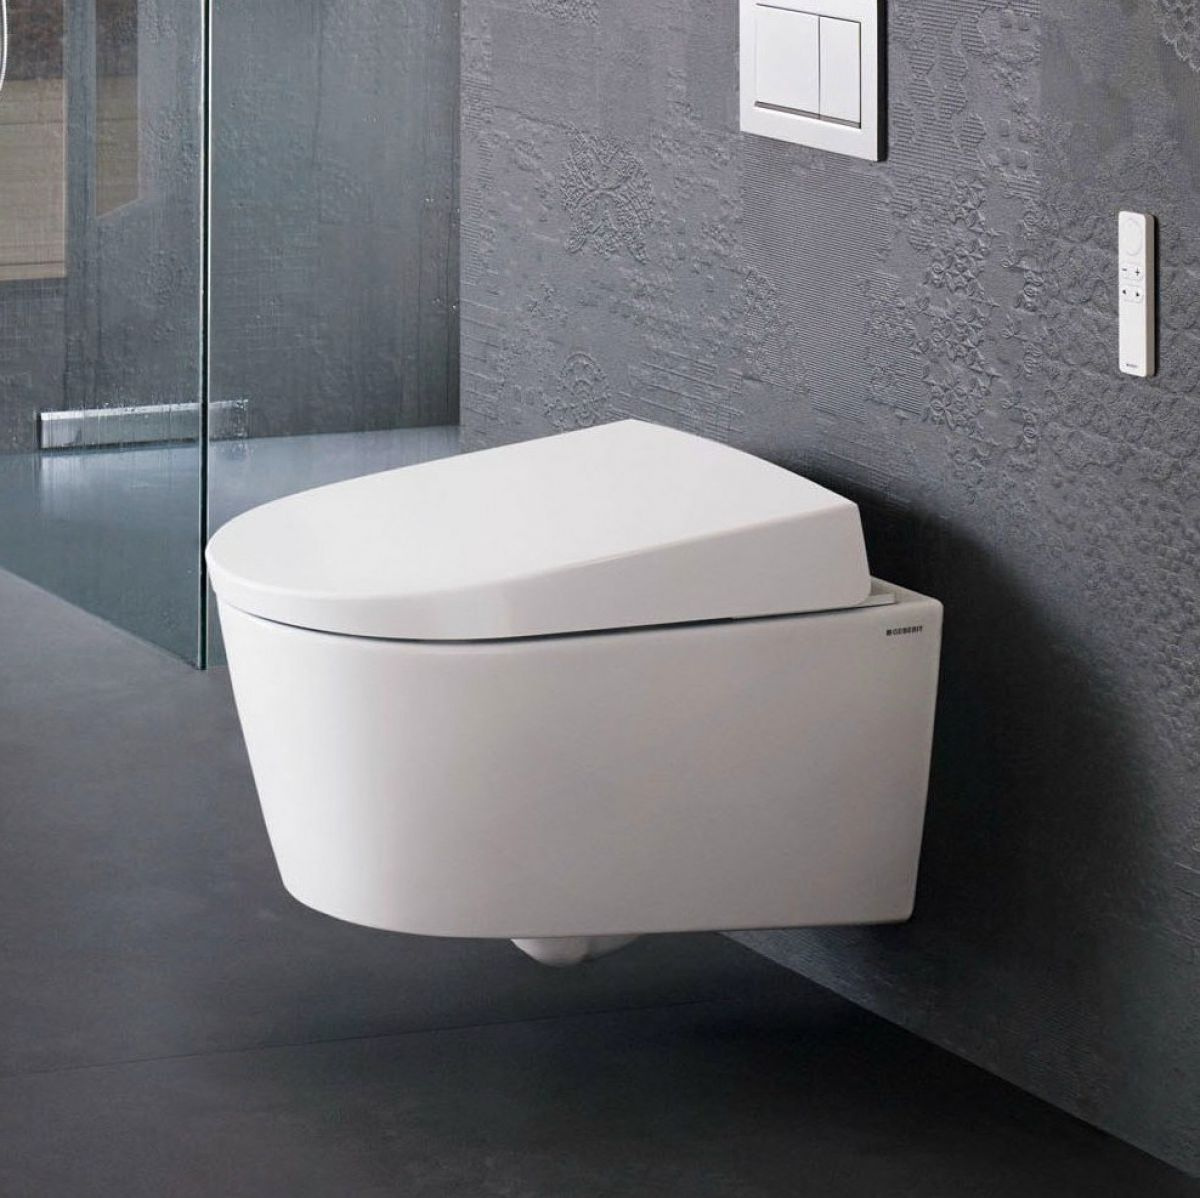 geberit aquaclean sela shower toilet uk bathrooms. Black Bedroom Furniture Sets. Home Design Ideas